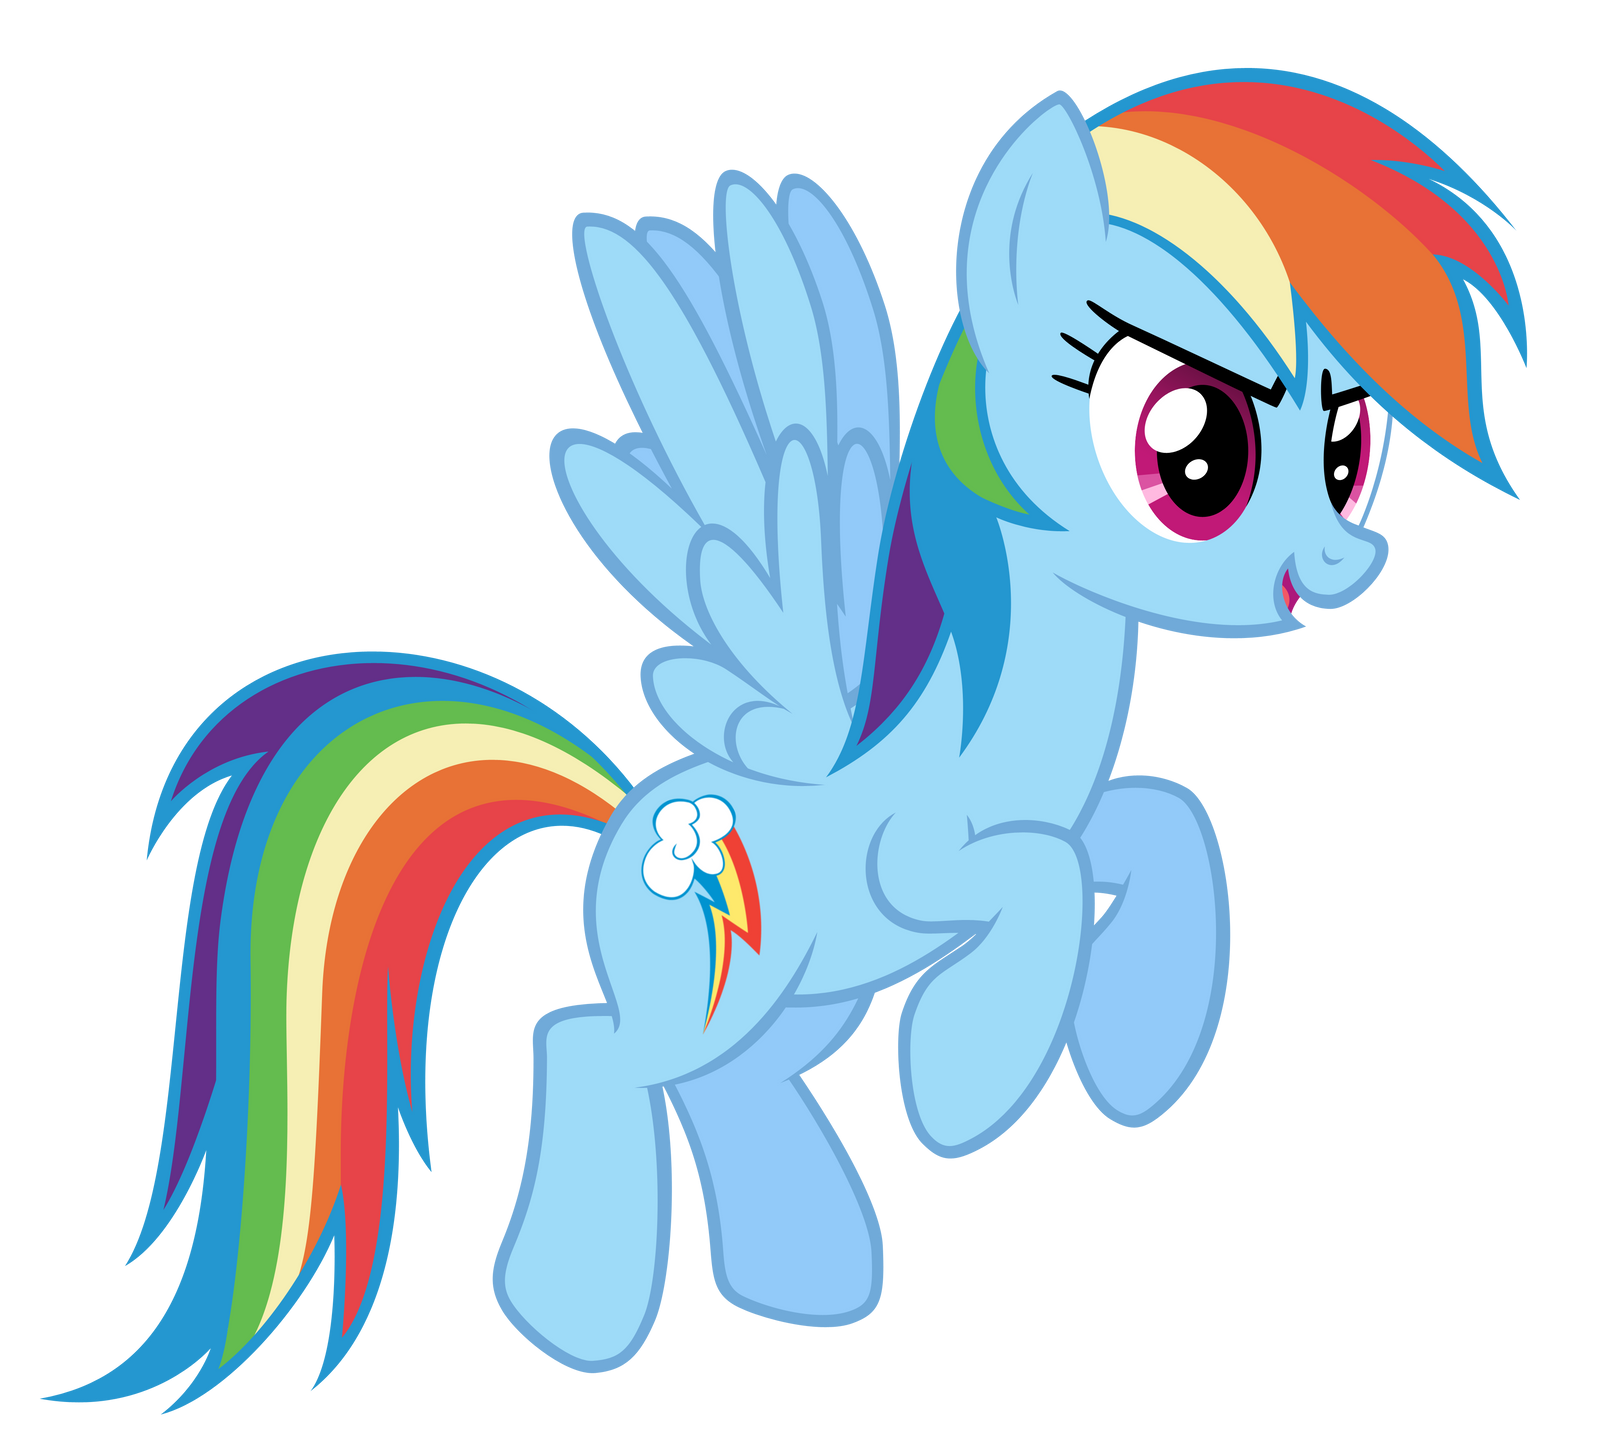 Rainbow Dash Flying by adamlhumphreys